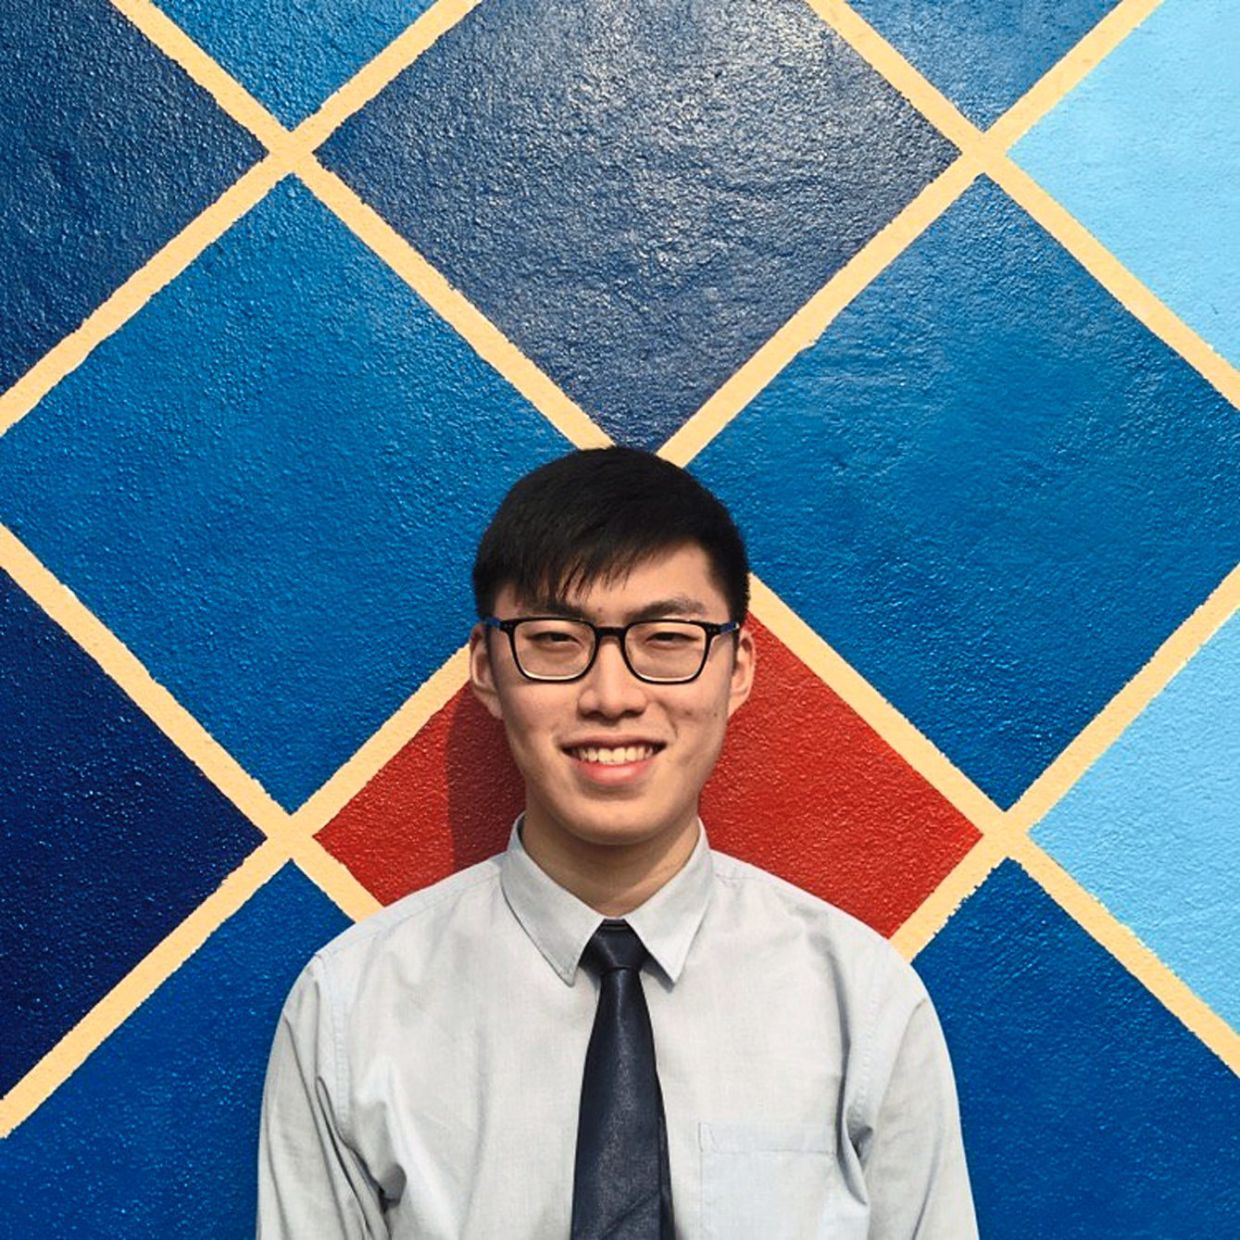 Yong Xun created the app to give students an alternative option to study anywhere and anytime, without having to lug their thick revision books wherever they go.